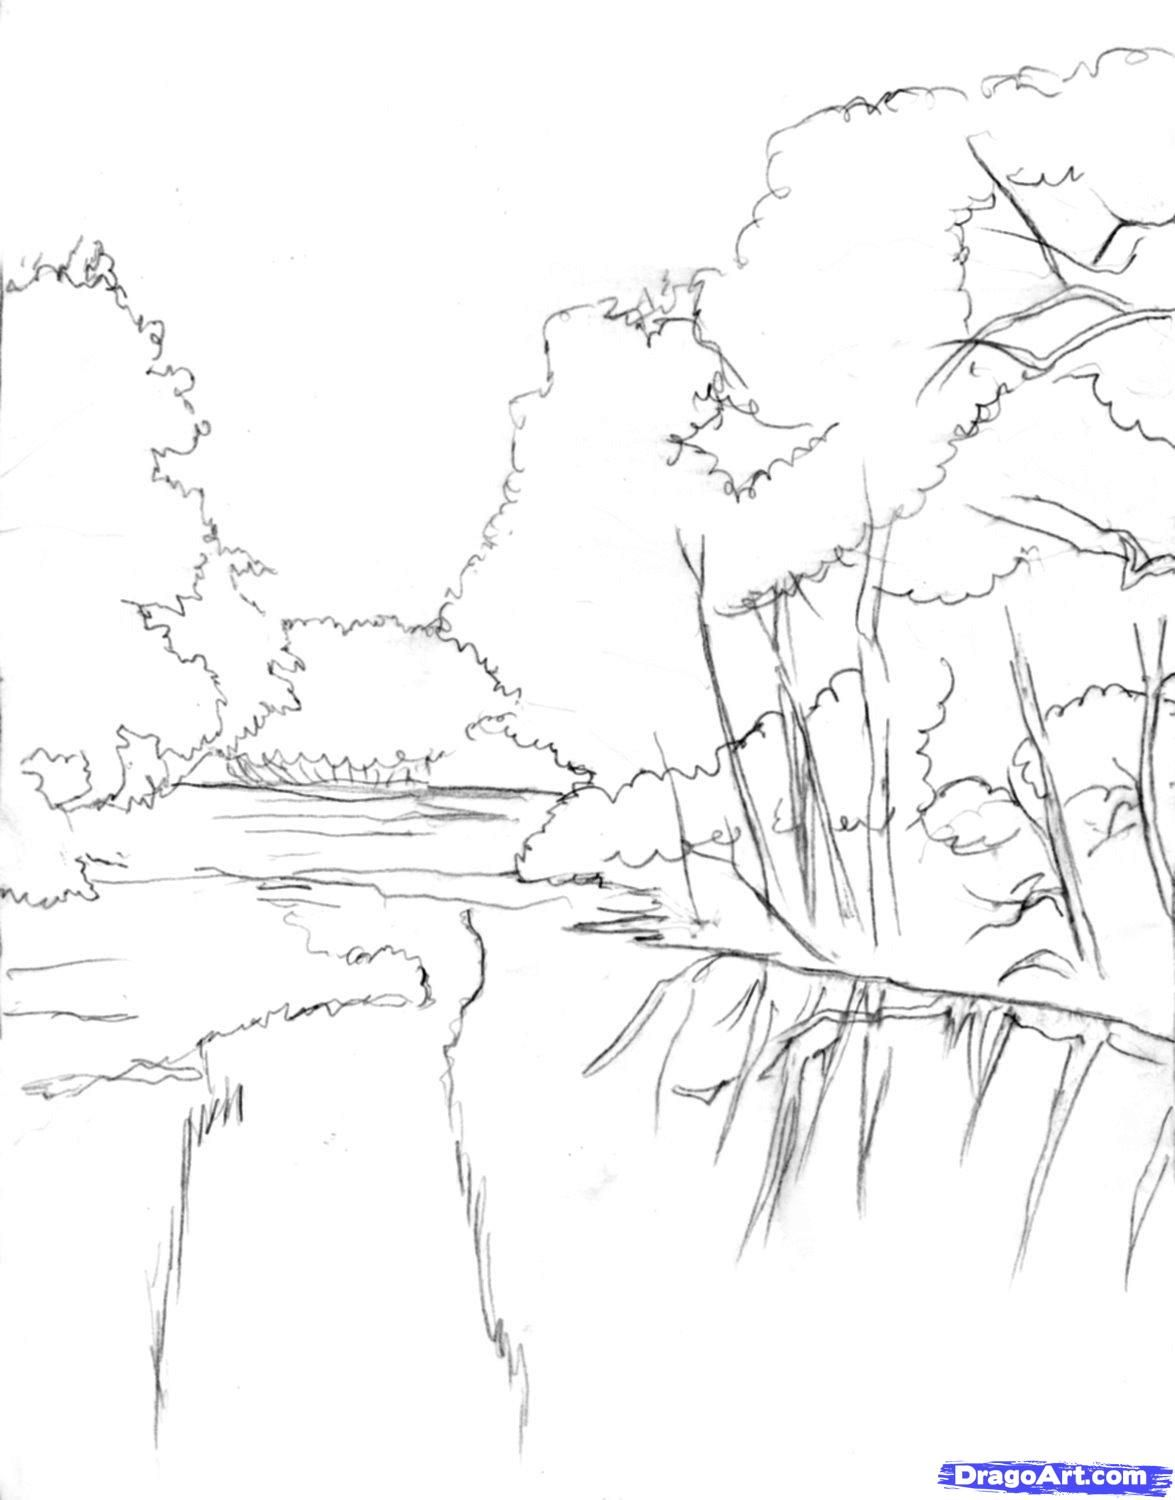 How to draw a realistic river step1 step 8 and shade it too learn